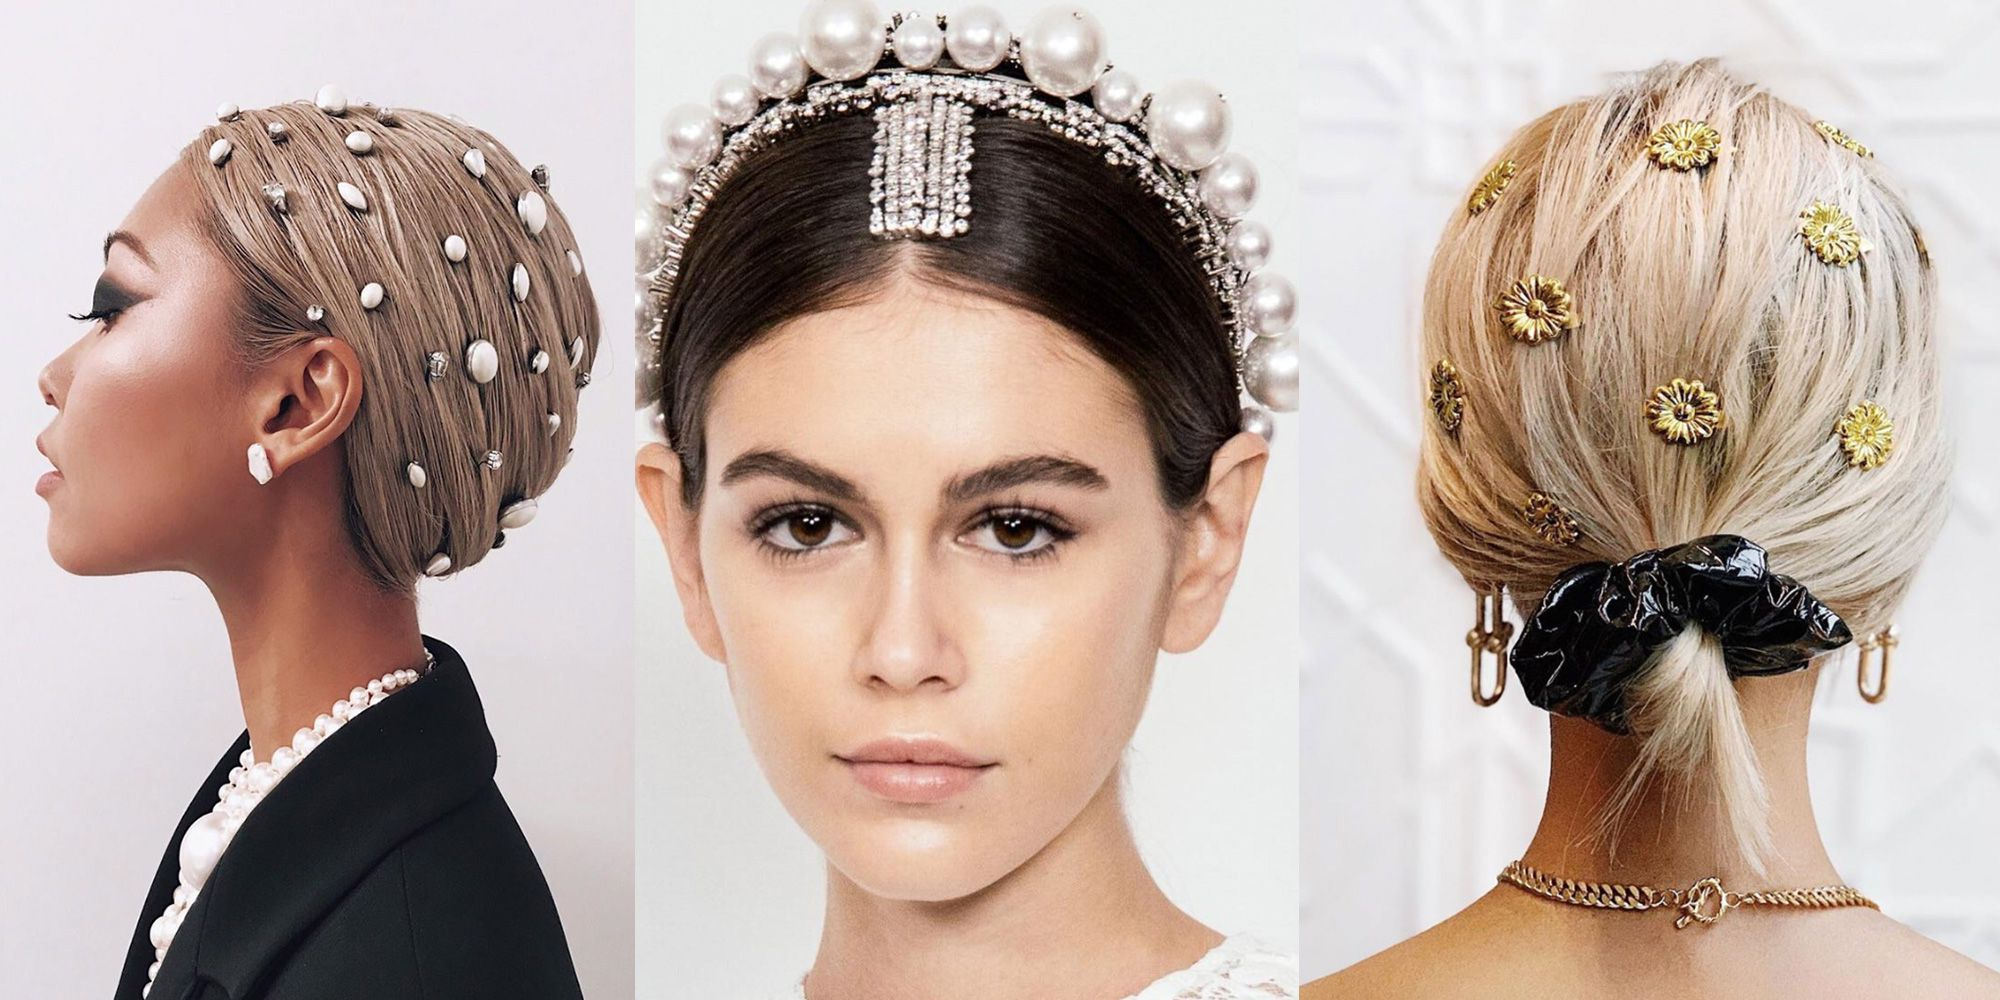 37 Short Wedding Hairstyles – Bridal Updos, Braids, And Inside Most Popular Double Headband Braided Hairstyles With Flowers (View 15 of 20)